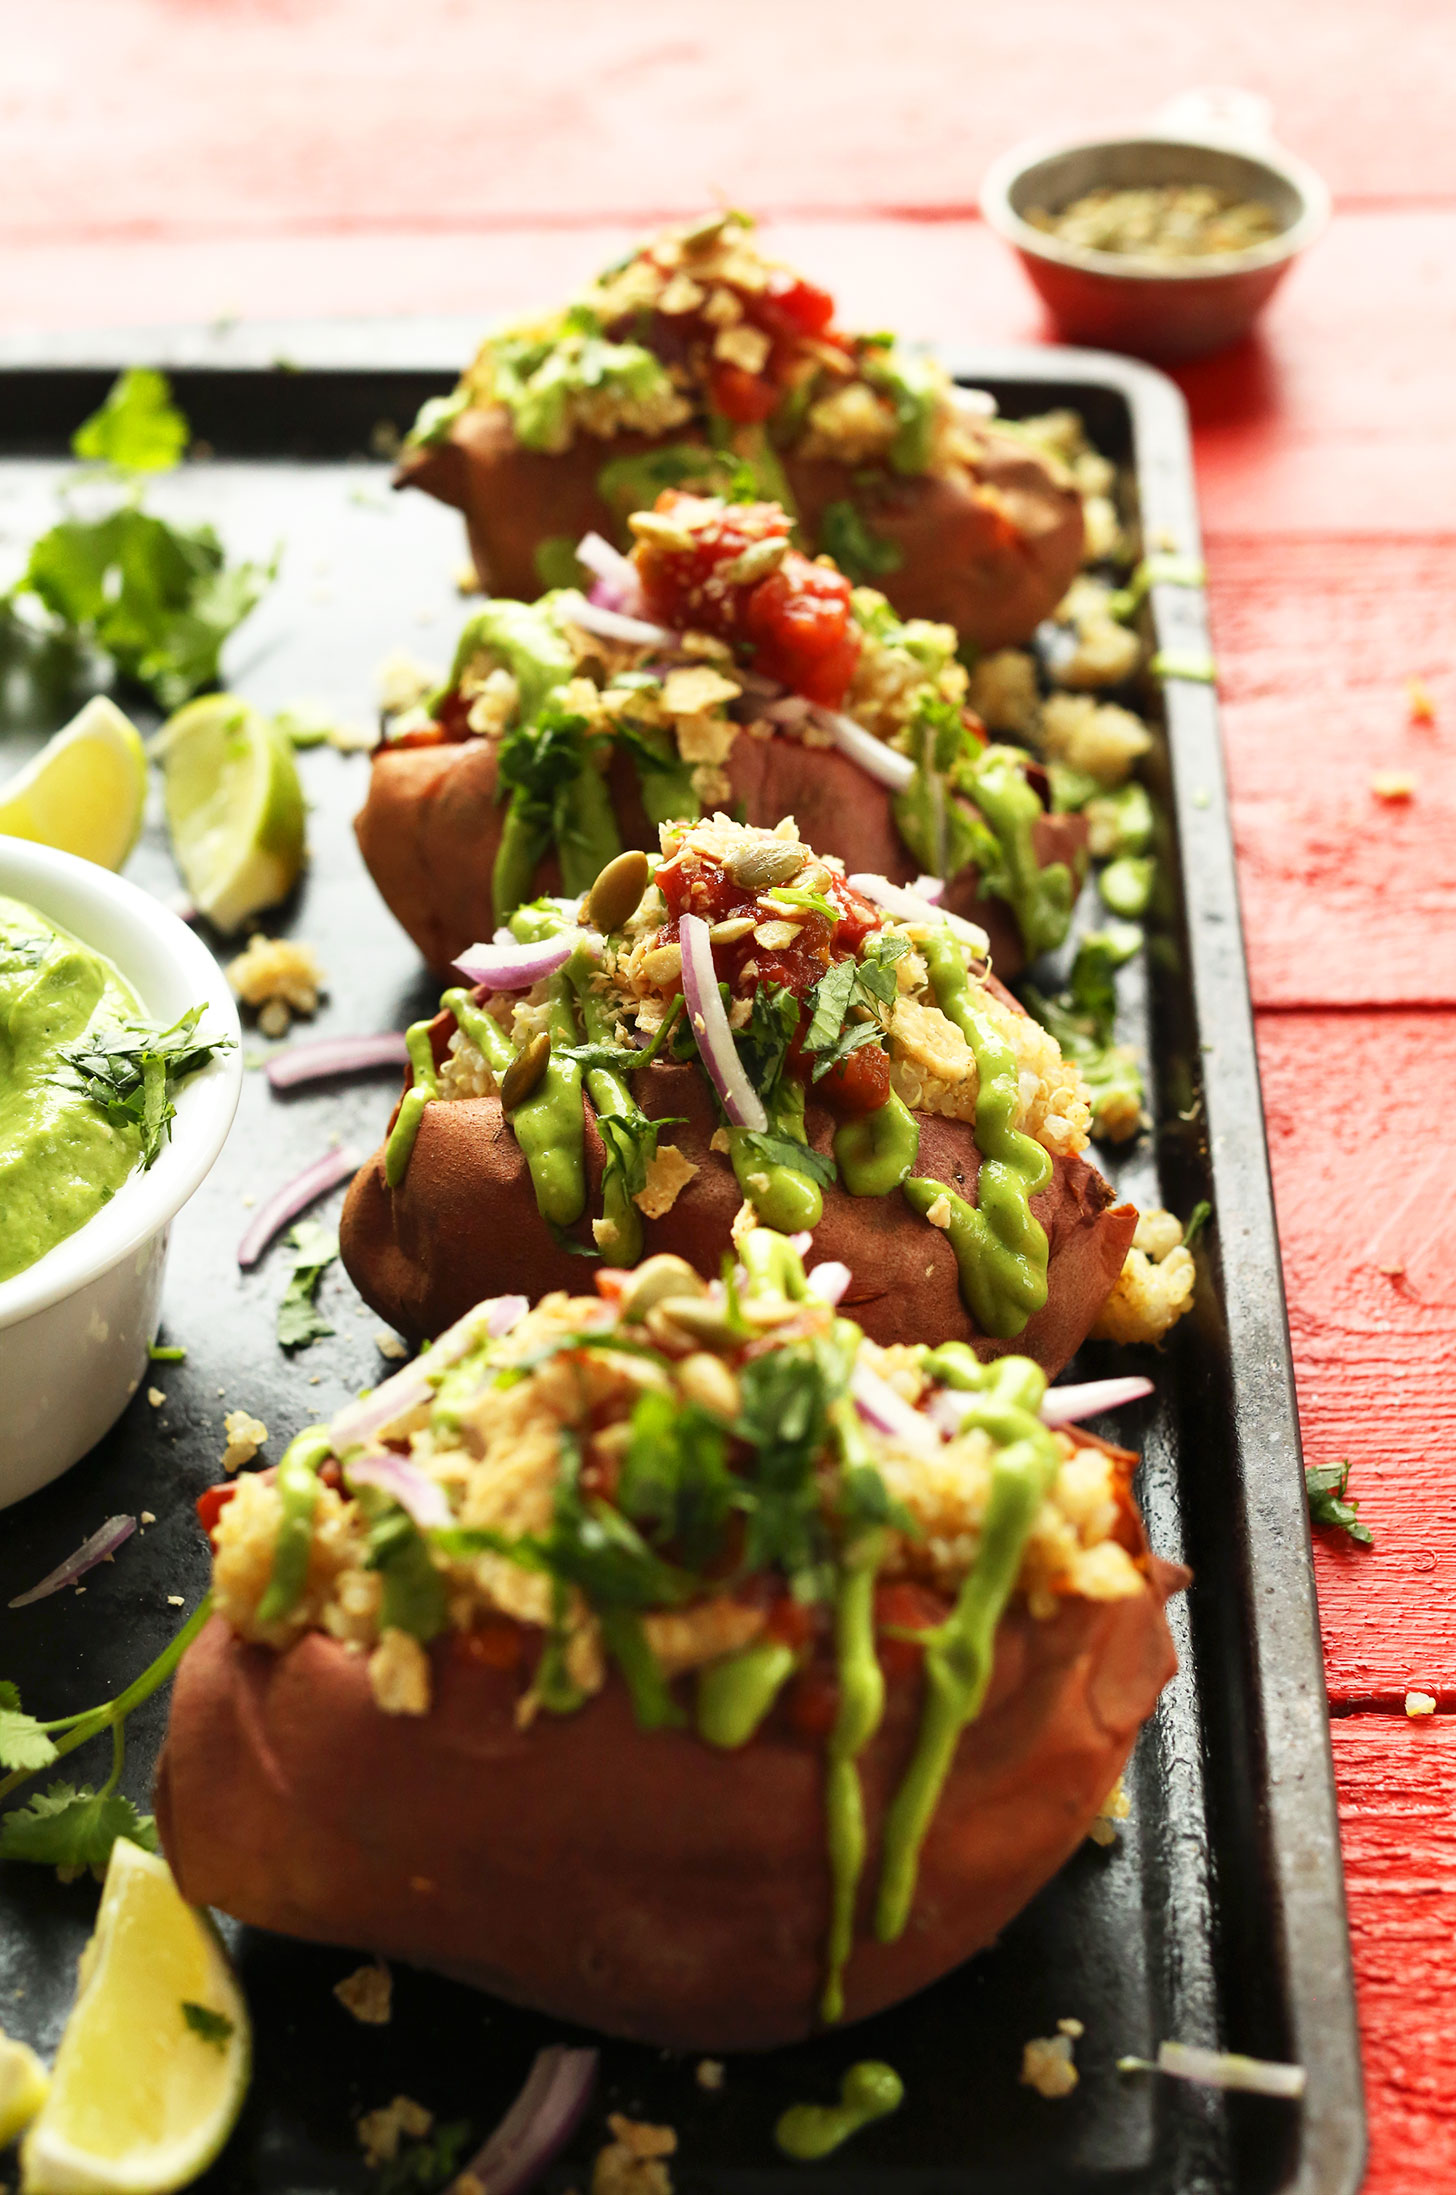 Tray of Amazing Quinoa Stuffed Sweet Potatoes loaded with delicious toppings